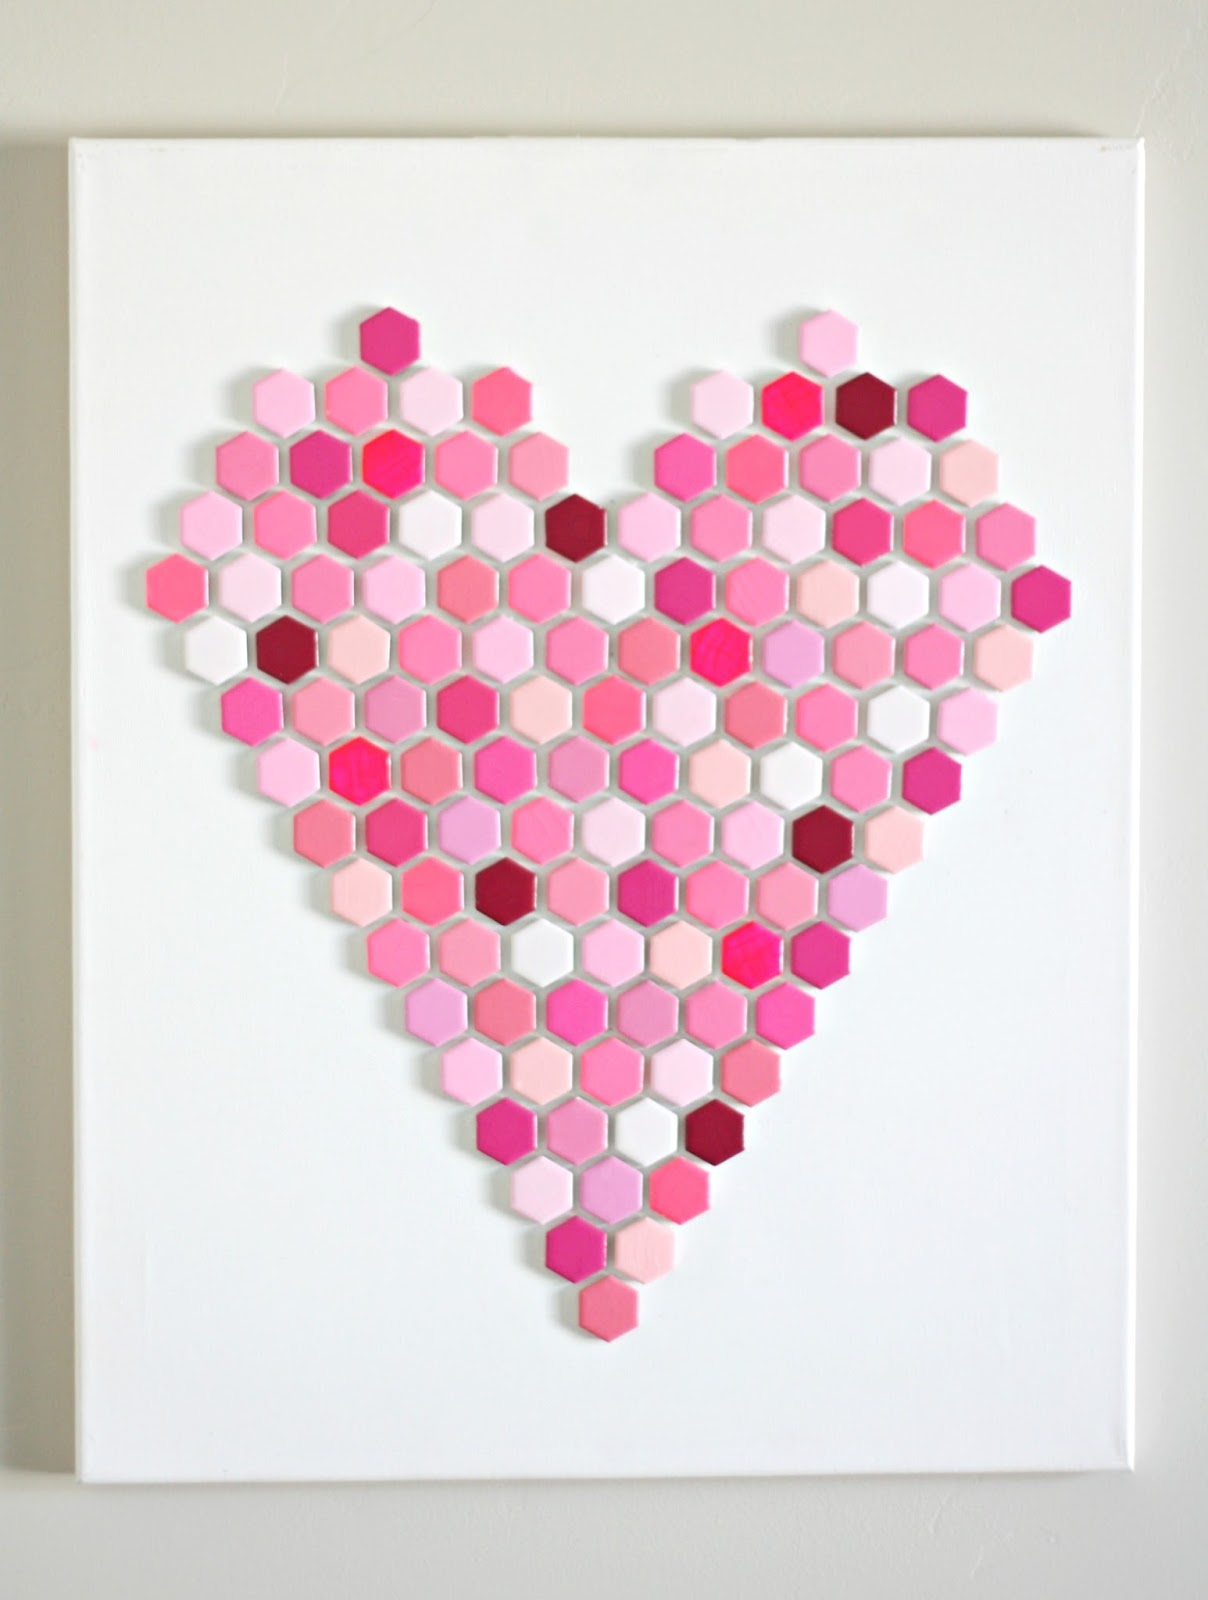 diy hexagon tile heart art 8